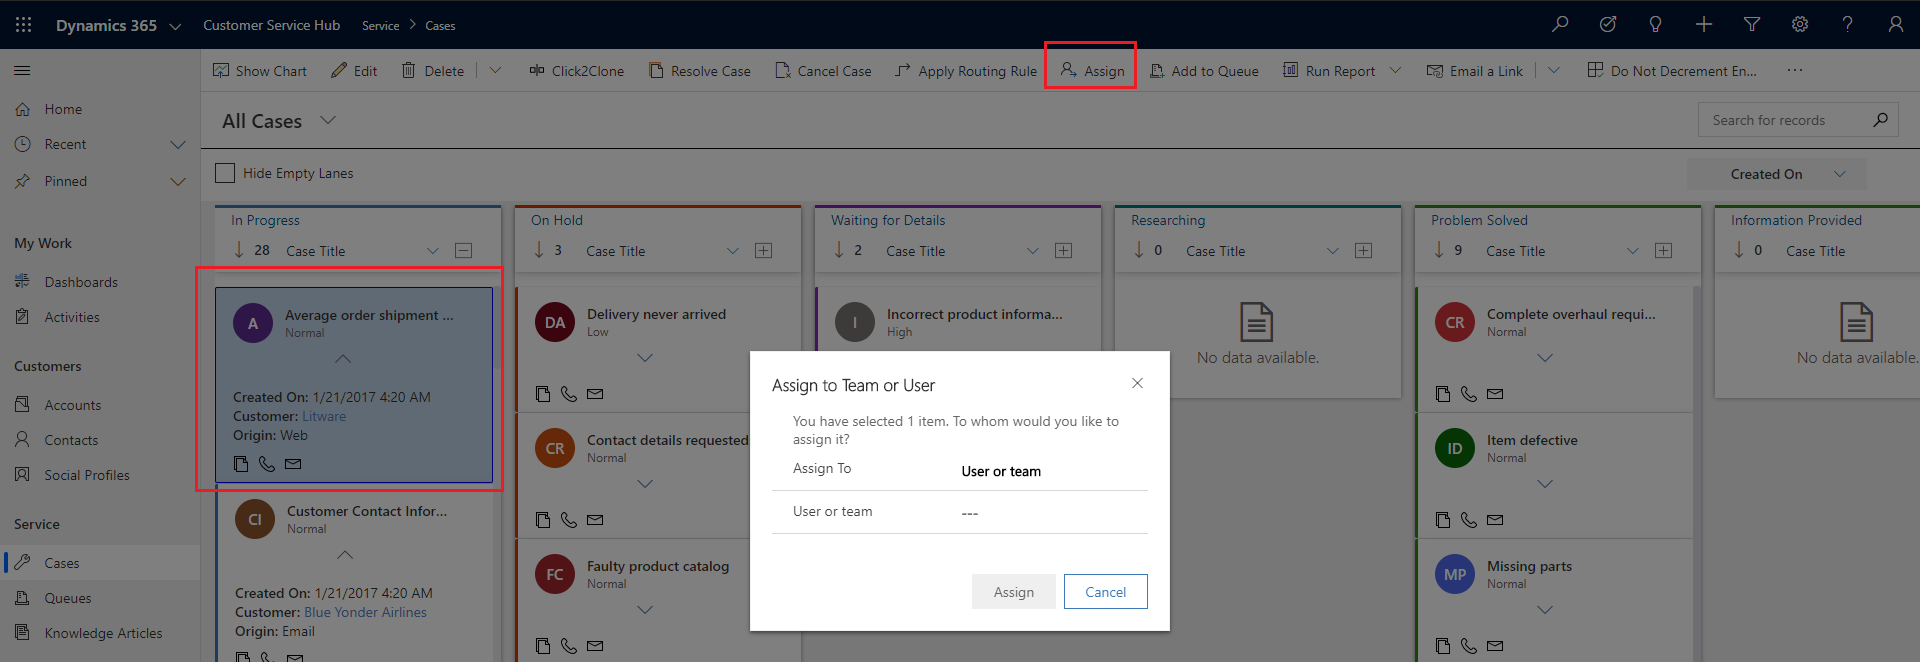 6Kanban View within Dynamics 365 CRM